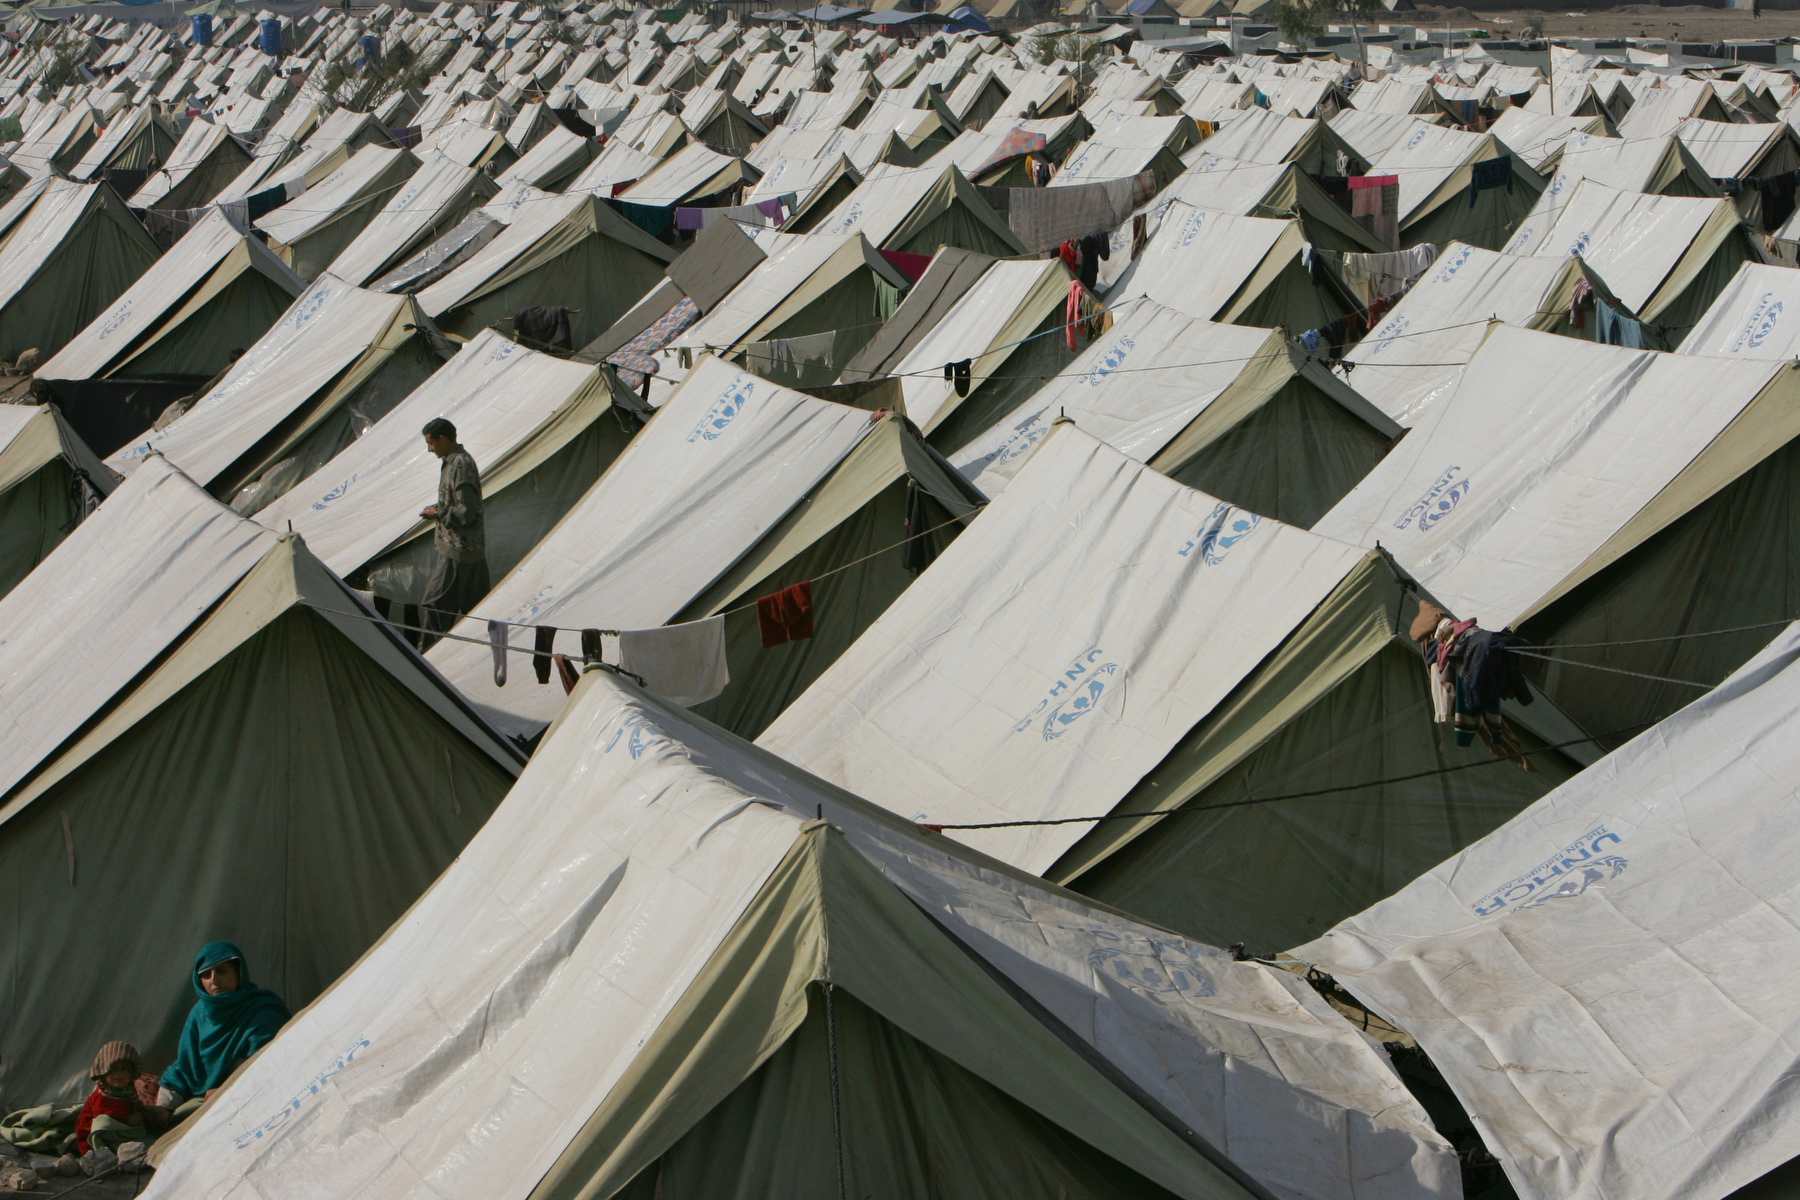 KASHTRA, PAKISTAN-DECEMBER 16: Earthquake survivors reside at a large tented camp in Kashtra, December 16, 2005. The camp has over 700 tents housing 3,336 earthquake victims who have moved from various area villages for the winter months.  Lack of snow is giving the quake survivors a break but they are still struggling in over crowded tented camps while fighting the cold weather with a lack of shelter.  (photo by Paula Bronstein /Getty Images)